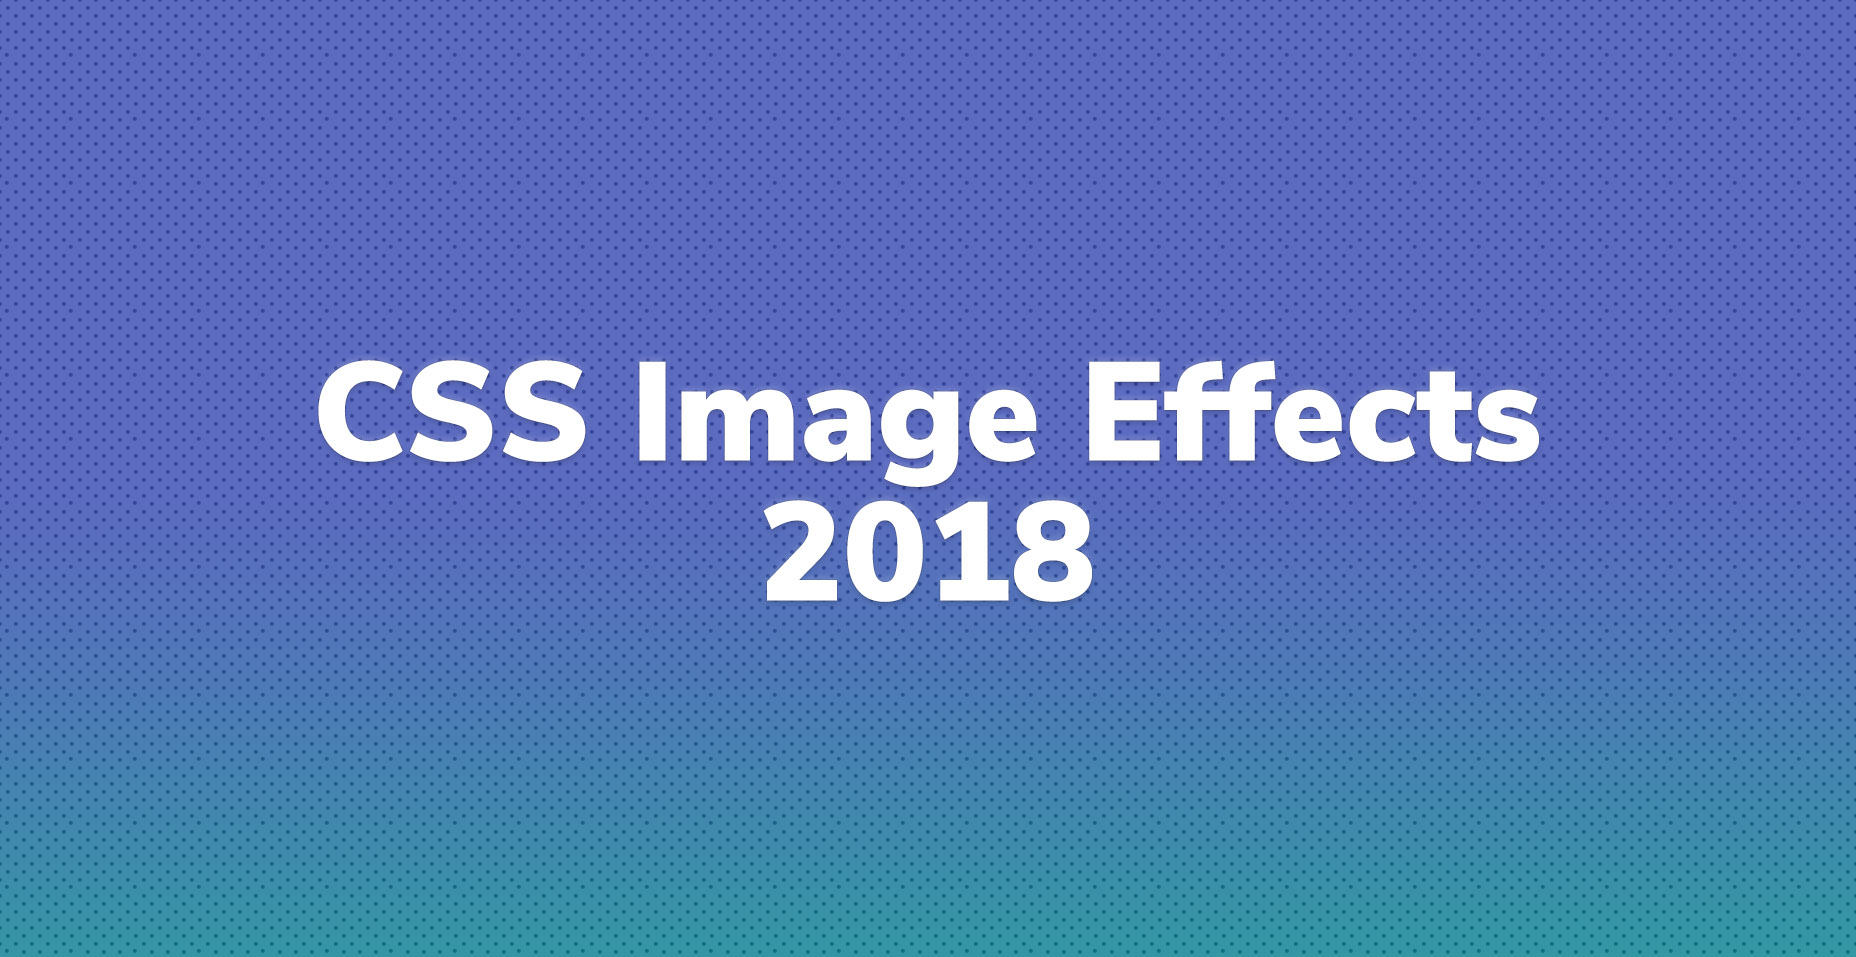 CSS Hover Image Effects For 2018 | Code Wall